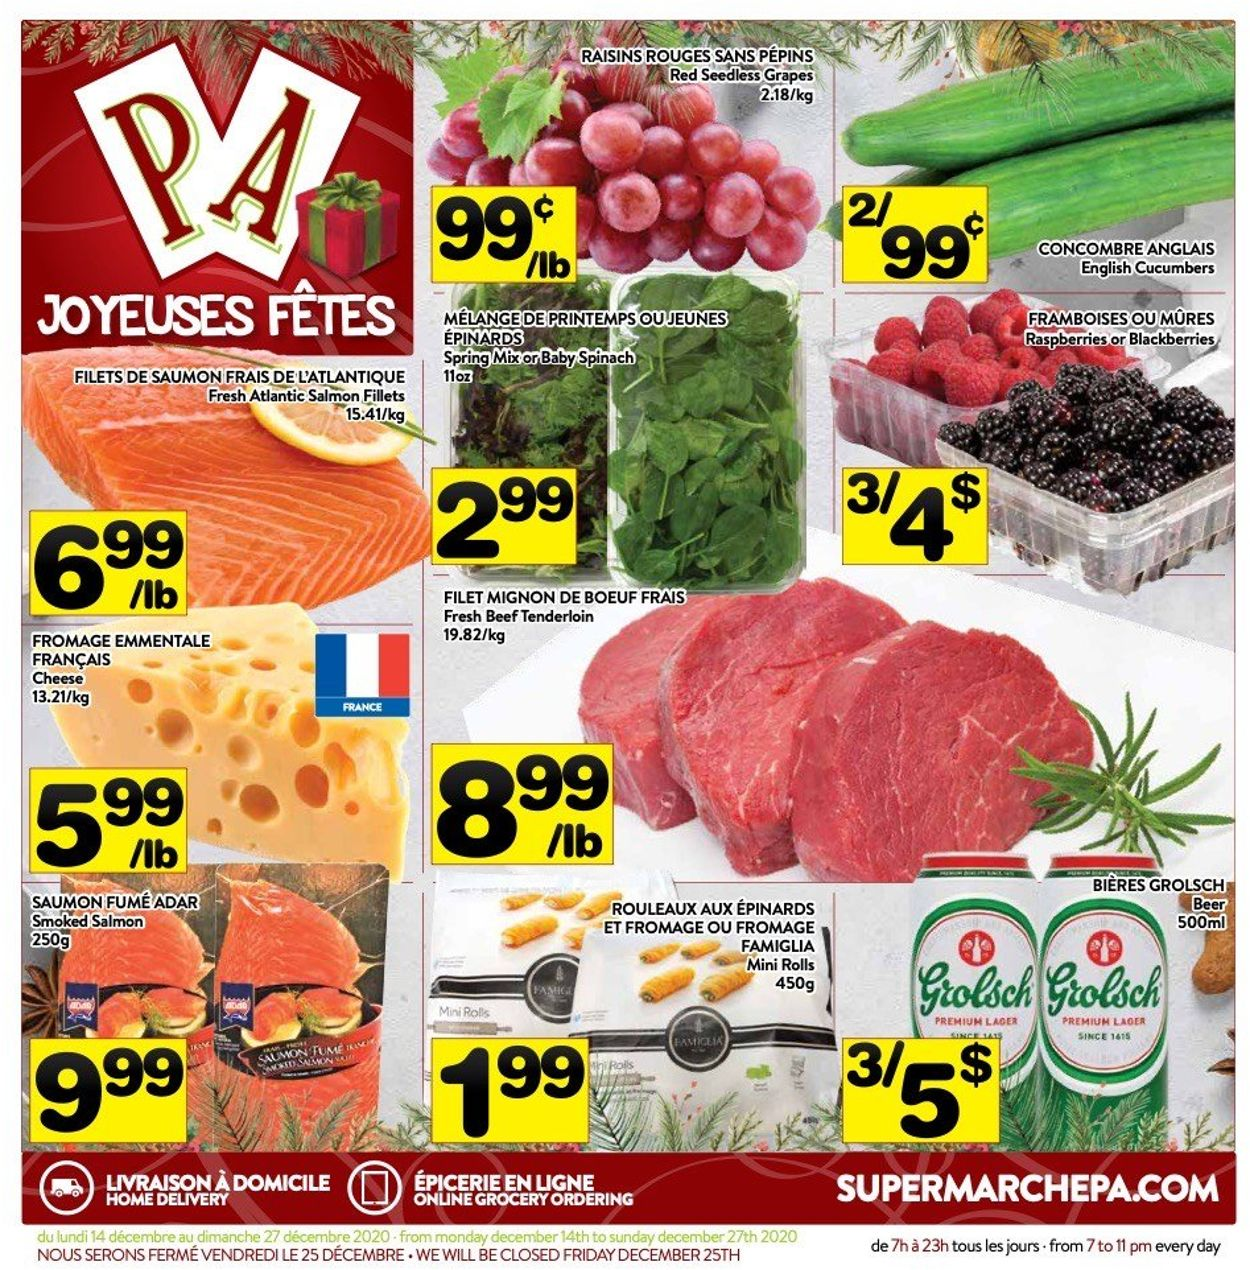 PA Supermarché - Christmas 2020 Flyer - 12/14-12/27/2020